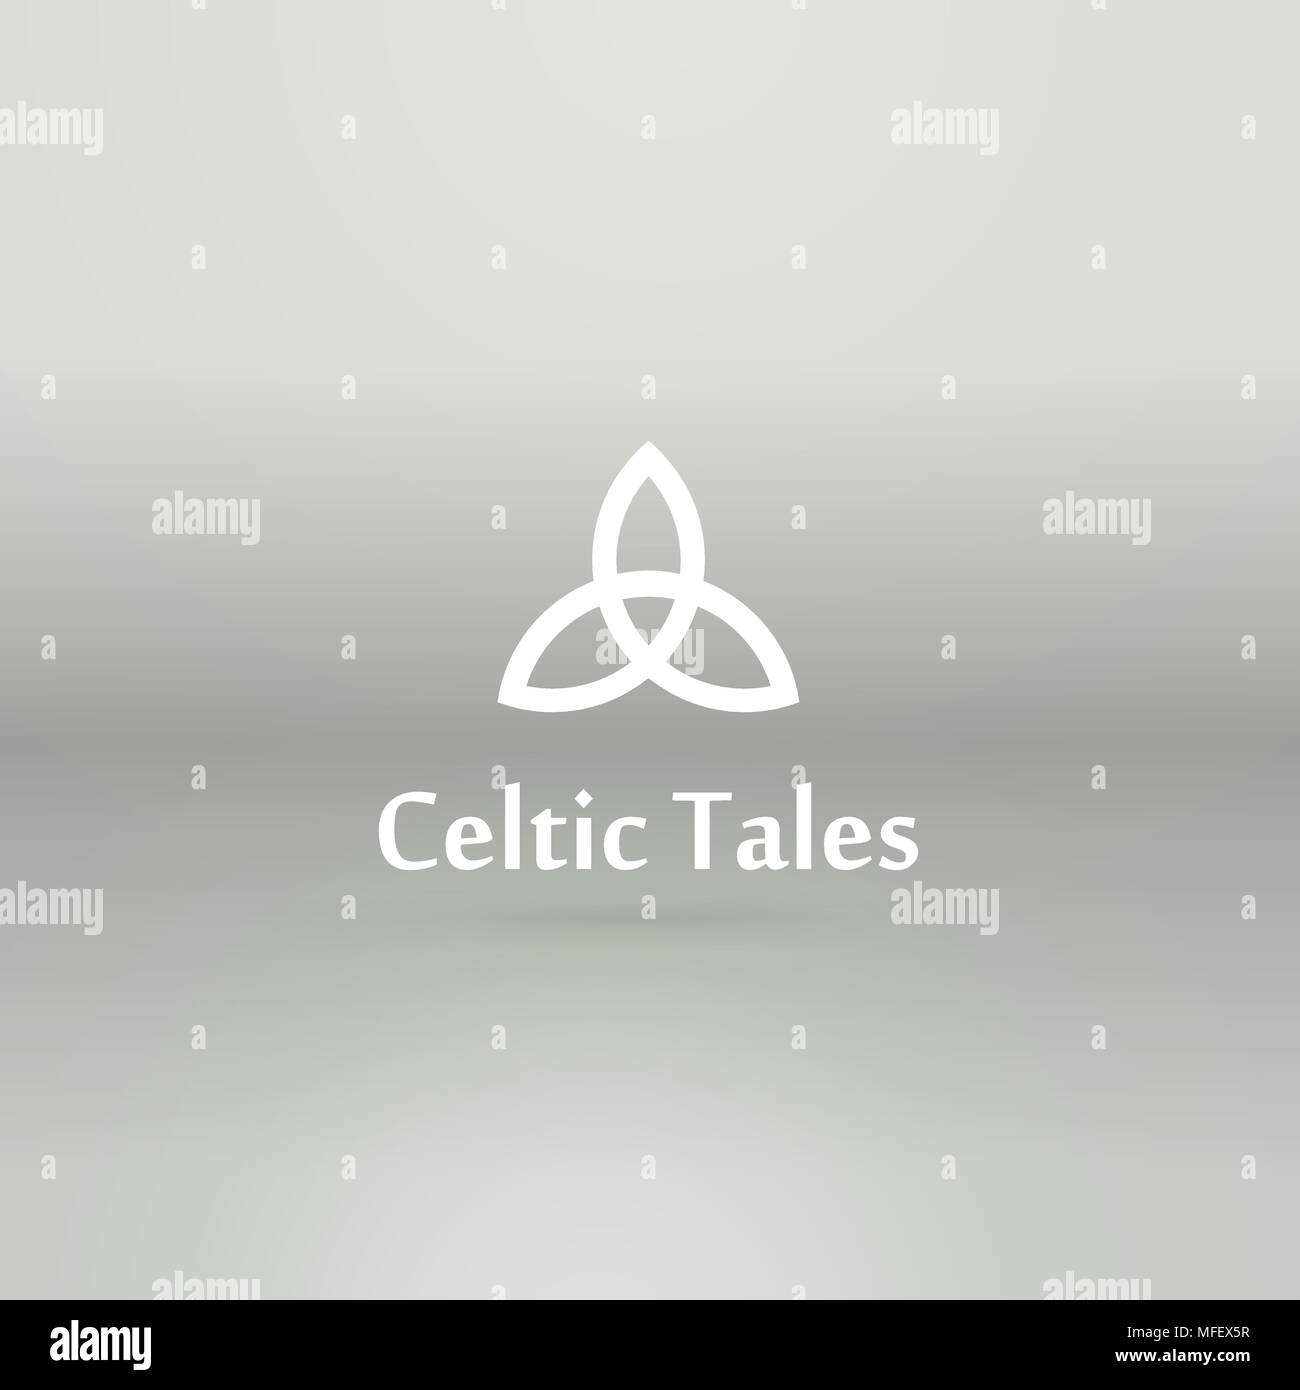 Celtic Tales - Stock Image